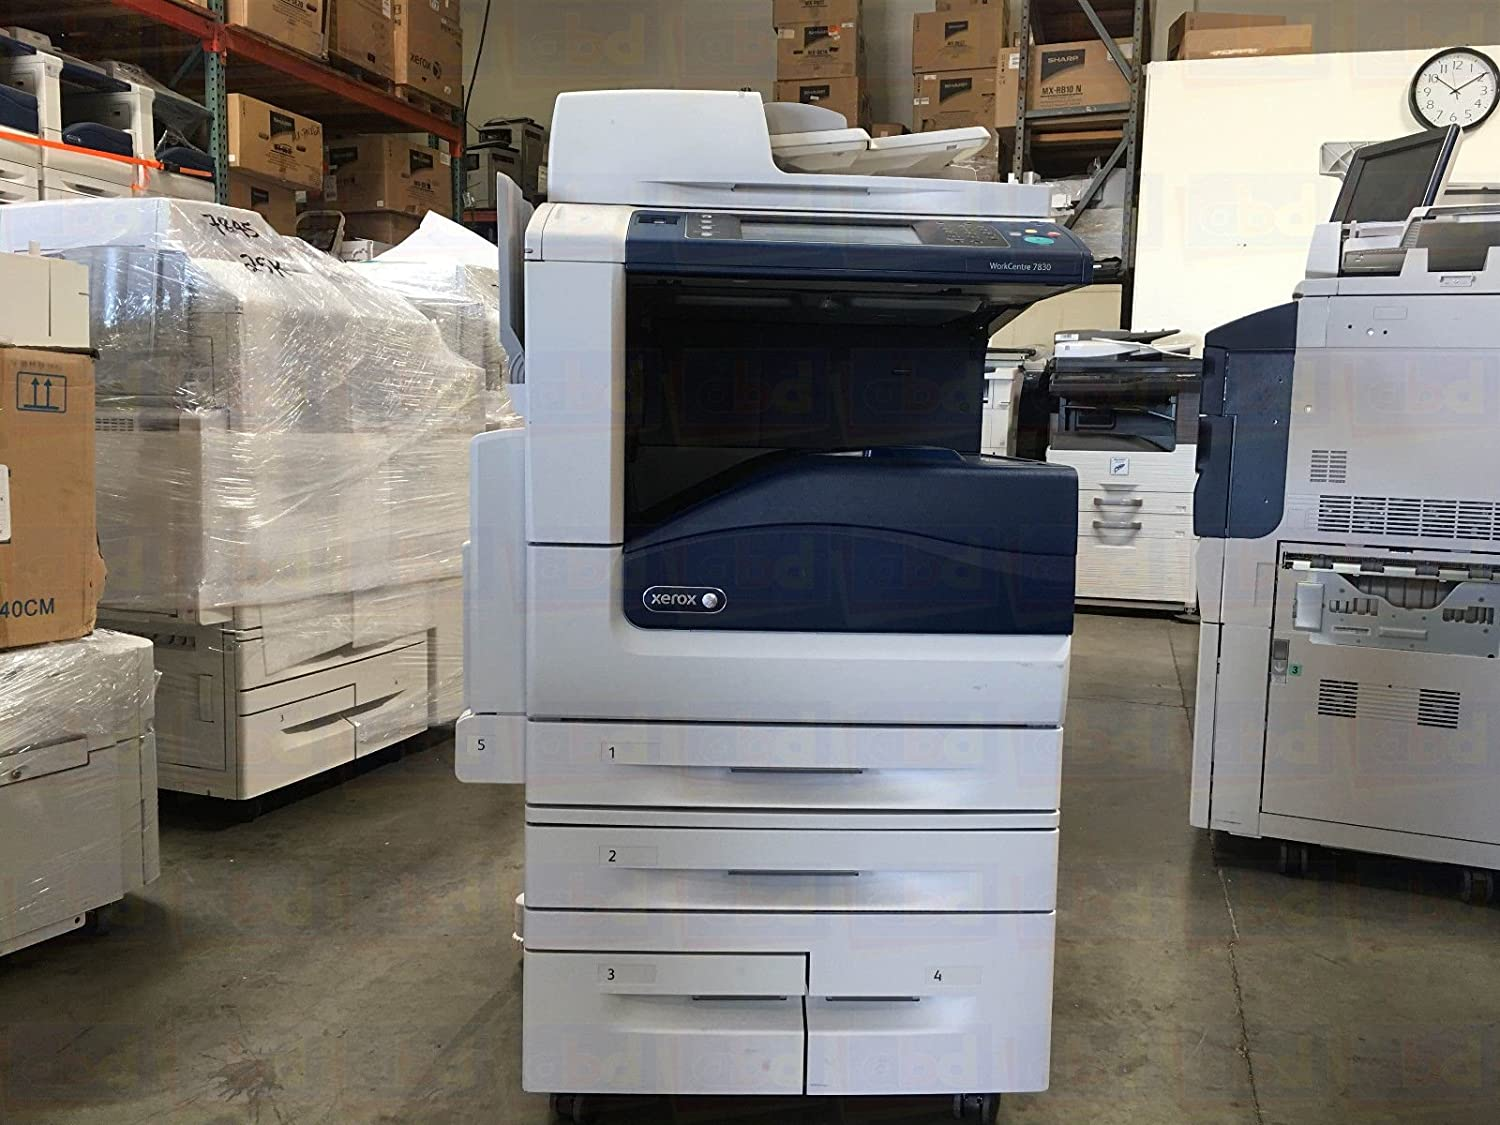 Xerox WorkCentre 7855 A3 Color Laser Multifunction Copier - SRA3/A3/A4/A5, 55ppm, Copy, Print, Scan, Internet Fax, Email, Auto Duplex, Network, USB, 2 Trays, High Capacity Tandem Tray